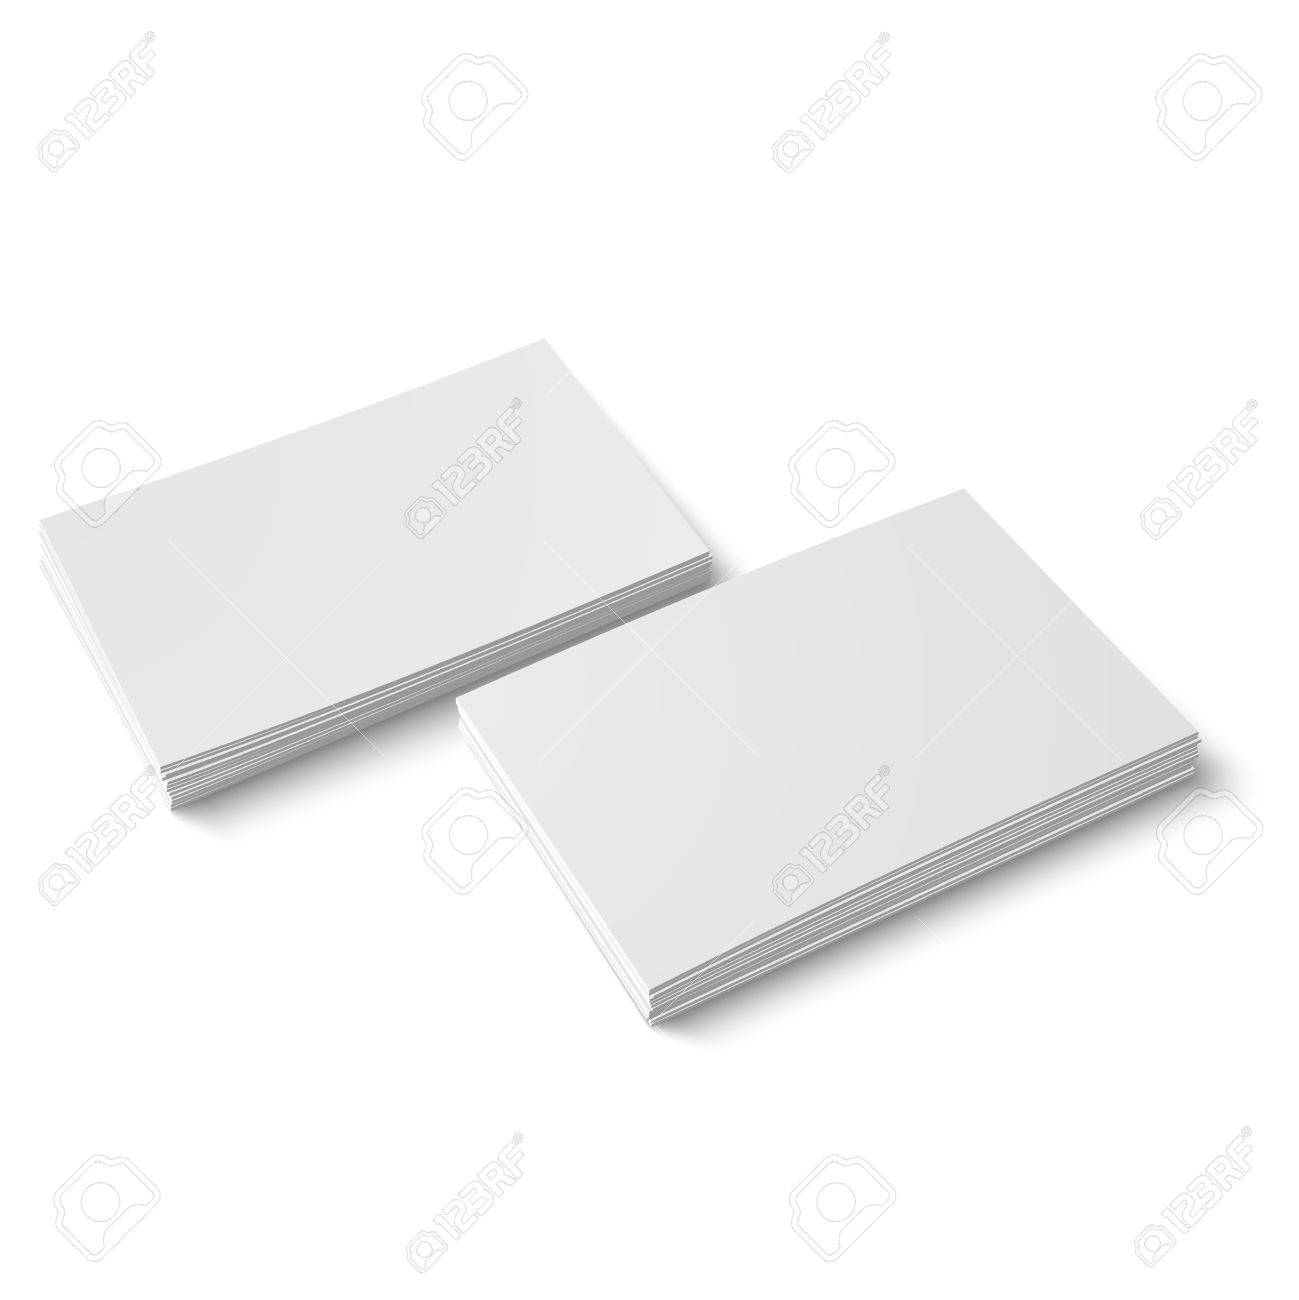 Two Stack Of Blank Business Cards On White Background With Soft ...